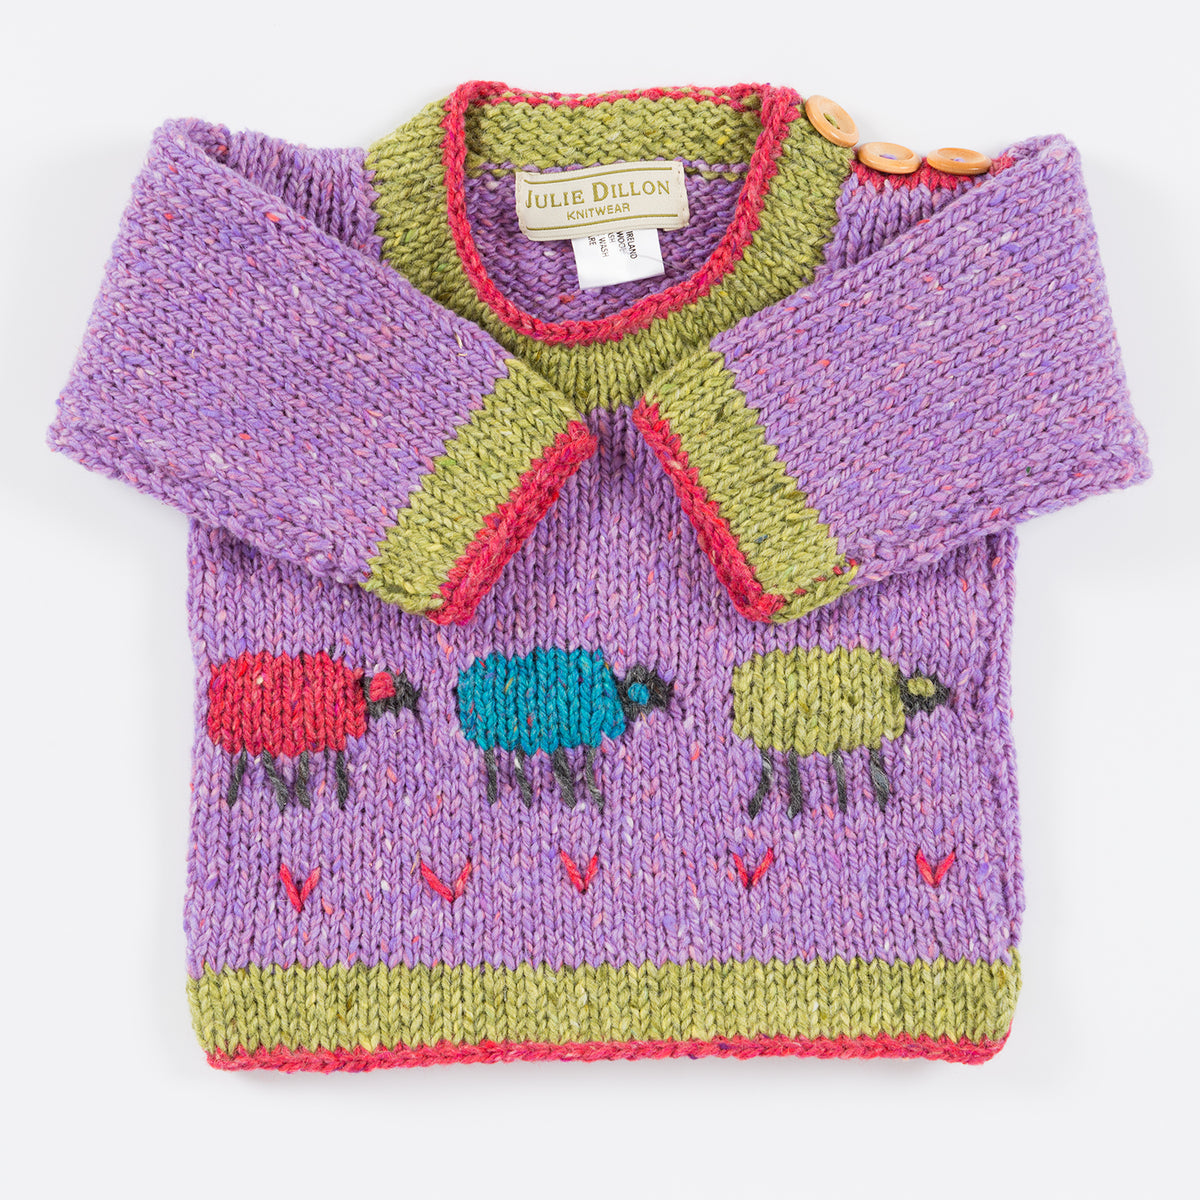 Handknitted Baby Sweater - Lilac  with Rainbow Sheep motif